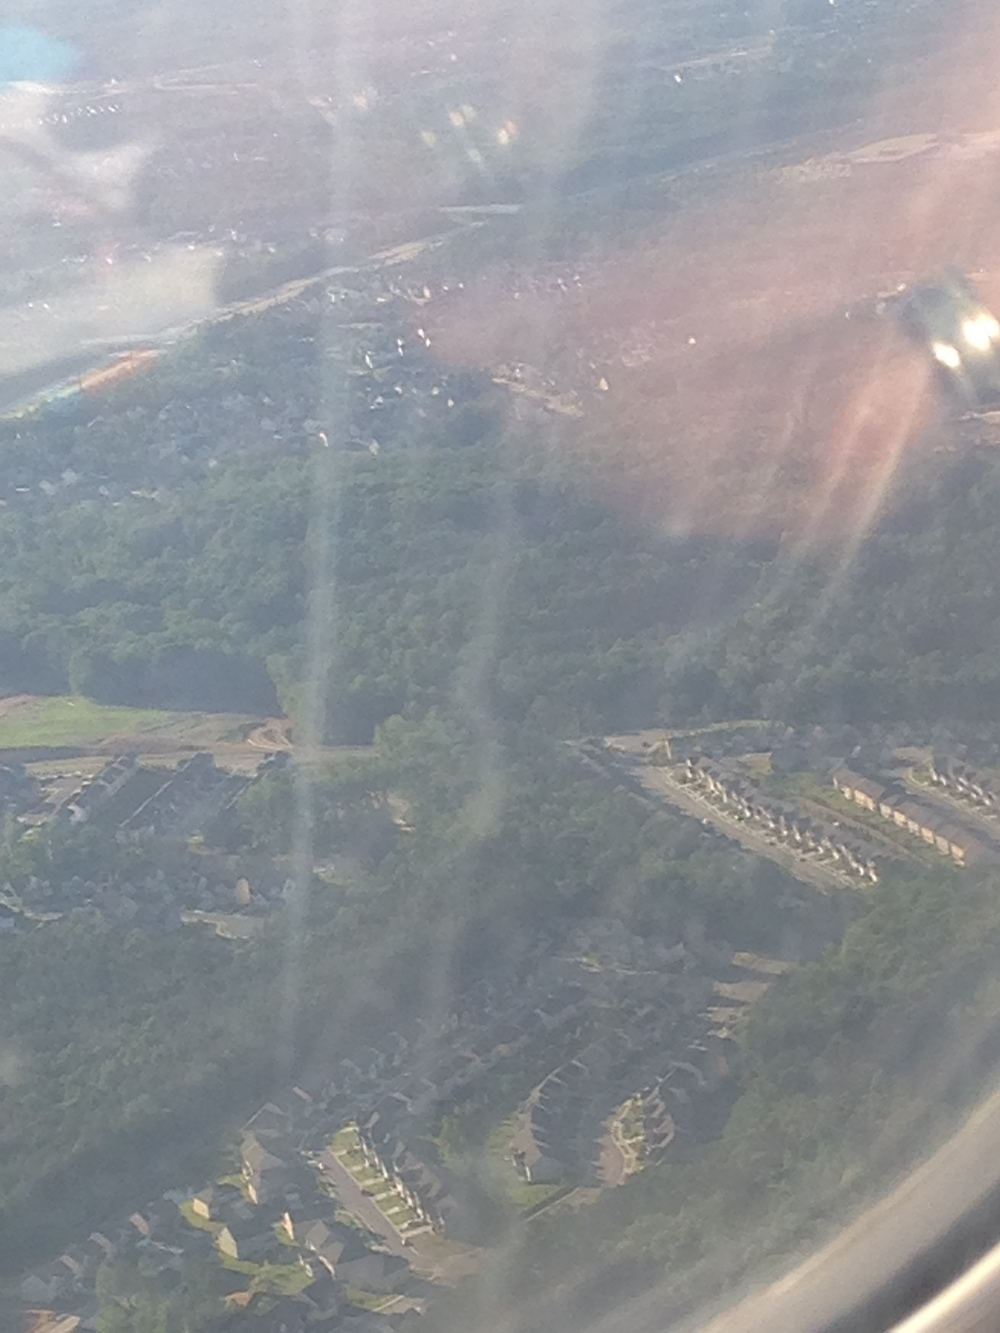 Landing back in NC.  2 more hours until home.